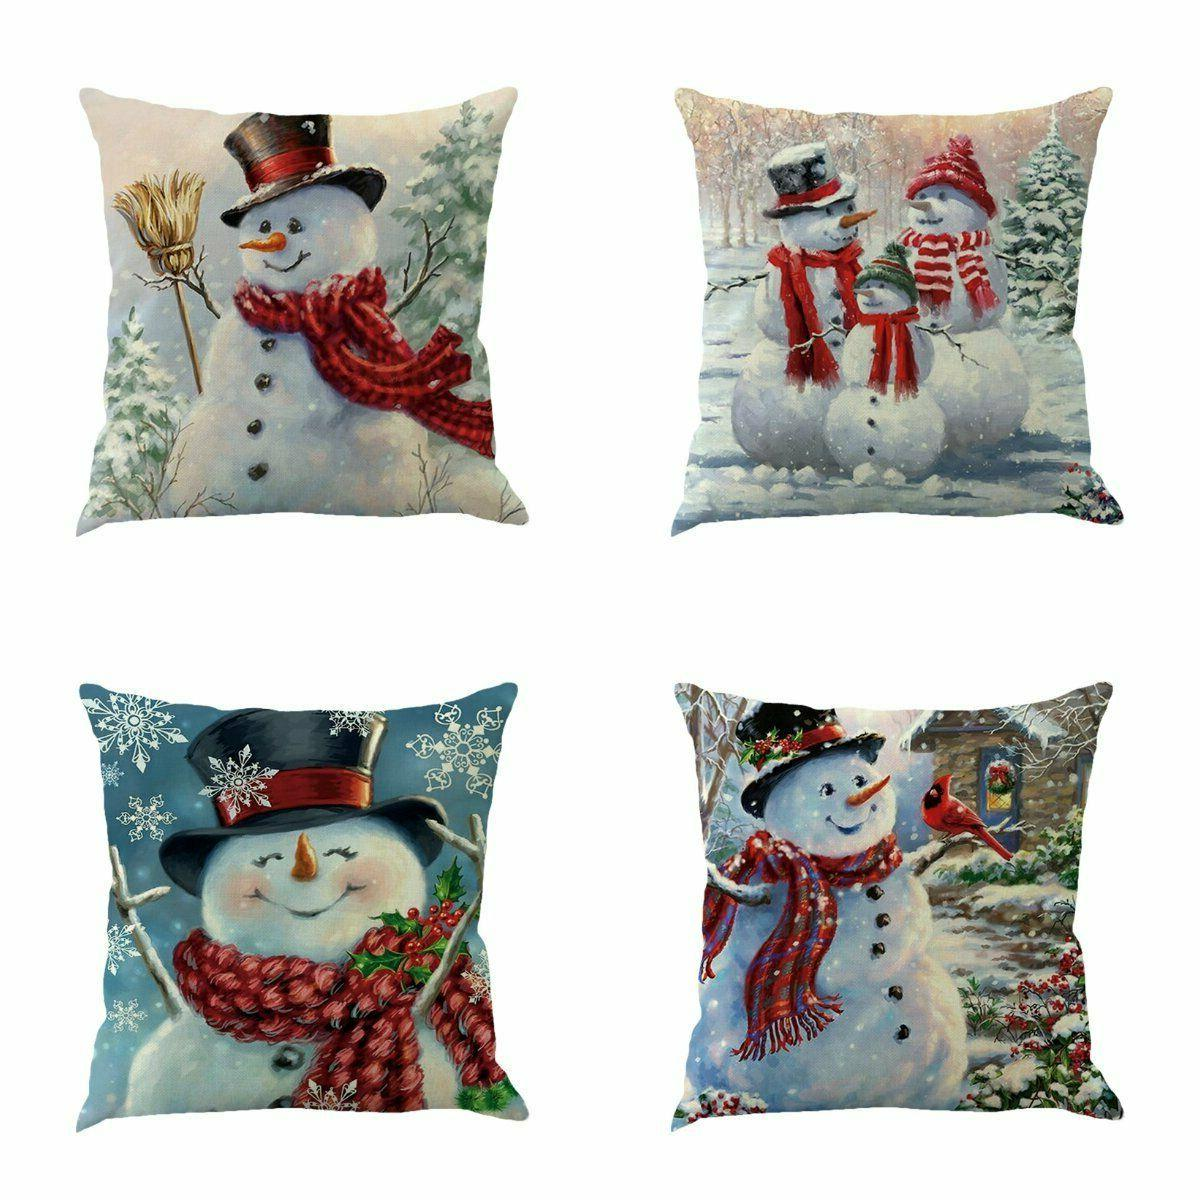 XIECCX Throw Pillow Cover 18 x 18 Inches Set of 4 Christmas